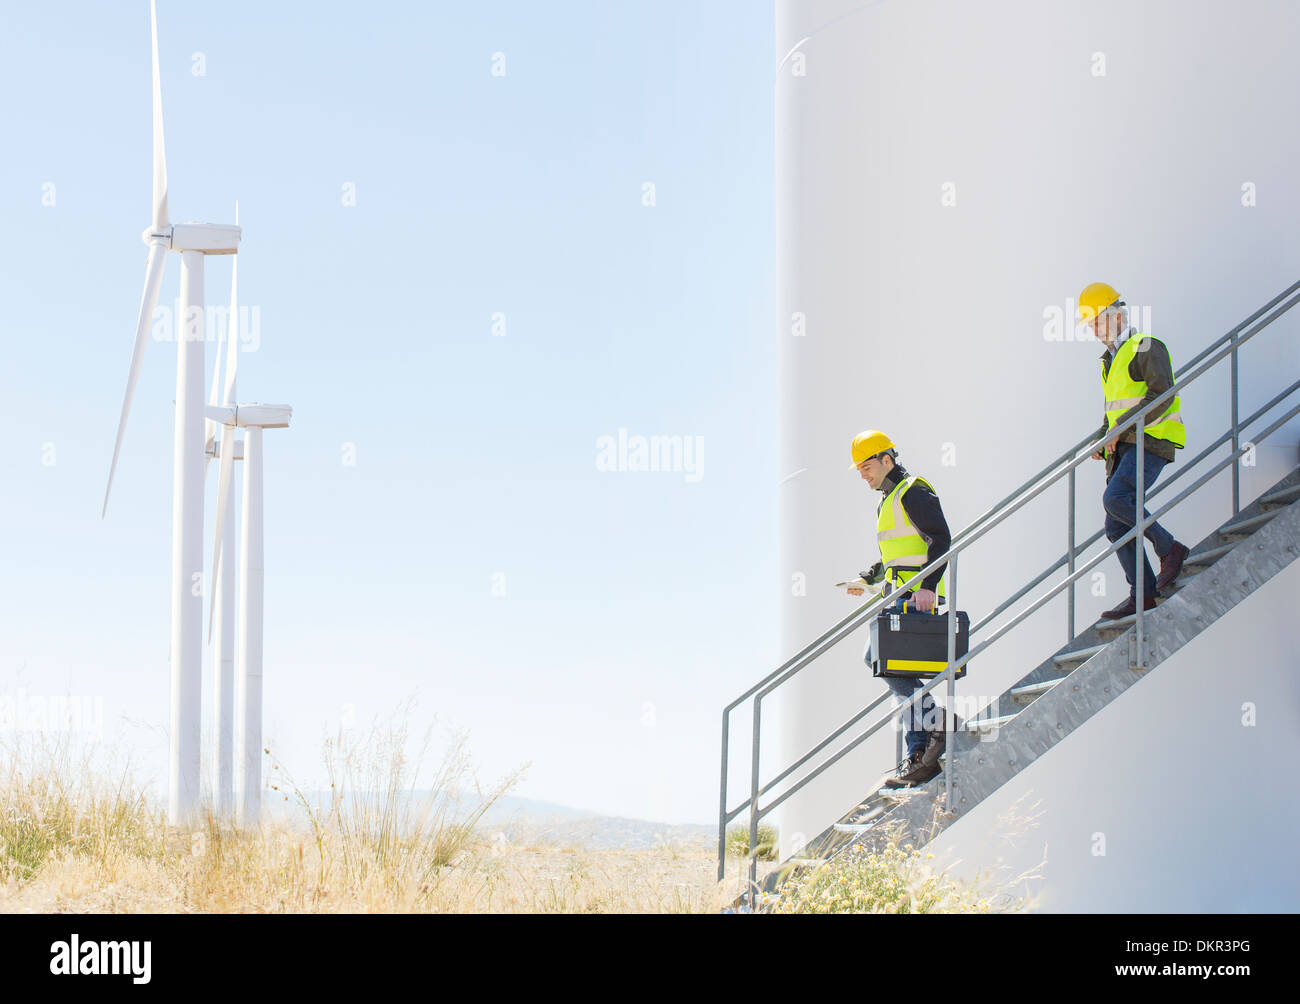 Workers on wind turbine in rural landscape - Stock Image